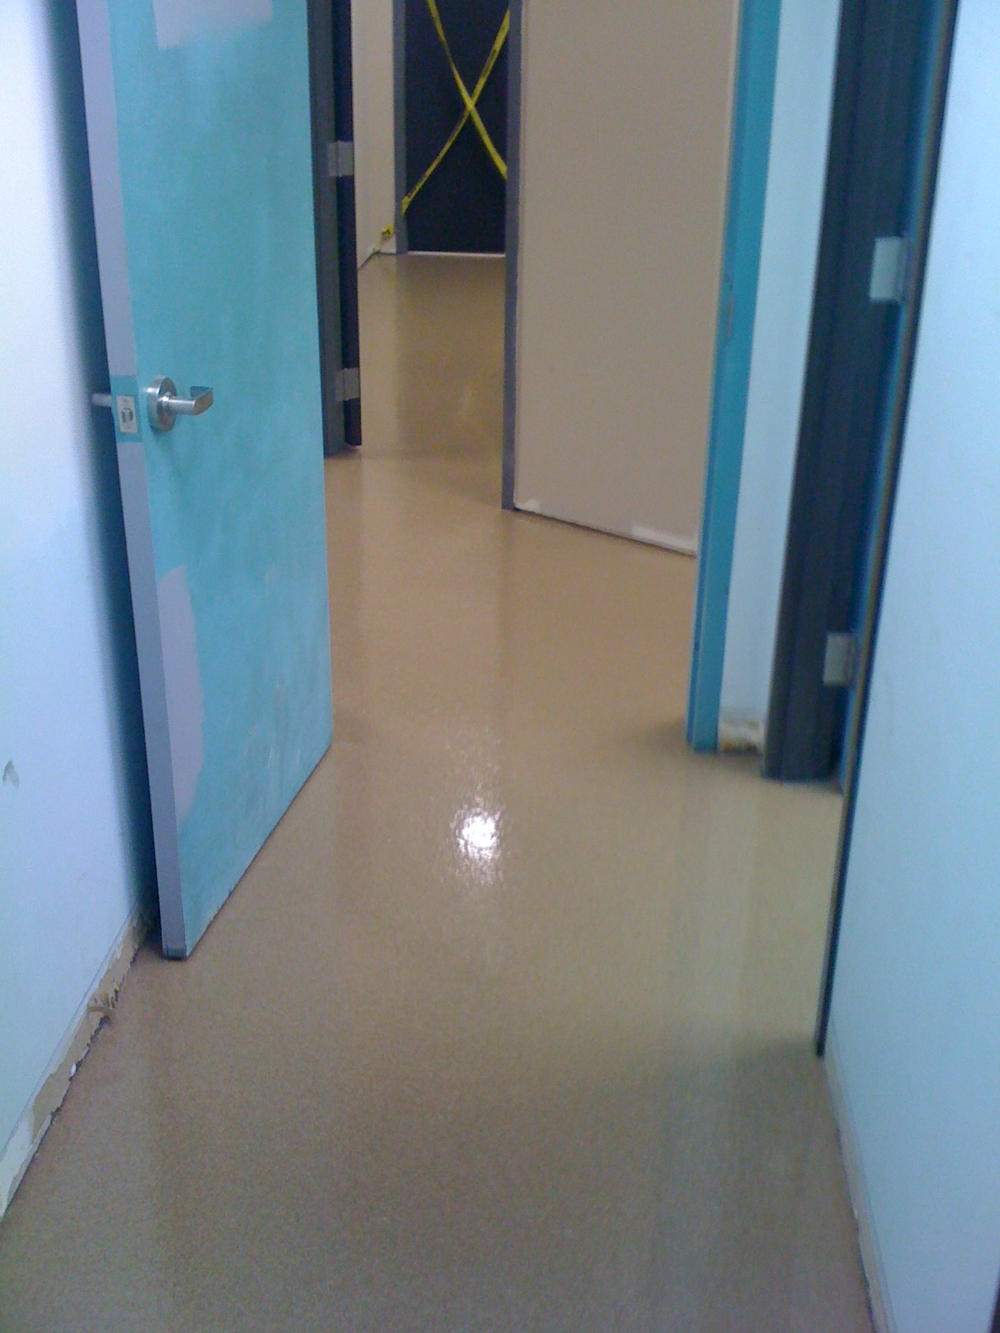 Specialty Flooring Systems : Decorative quartz flooring system installed — j wesselman